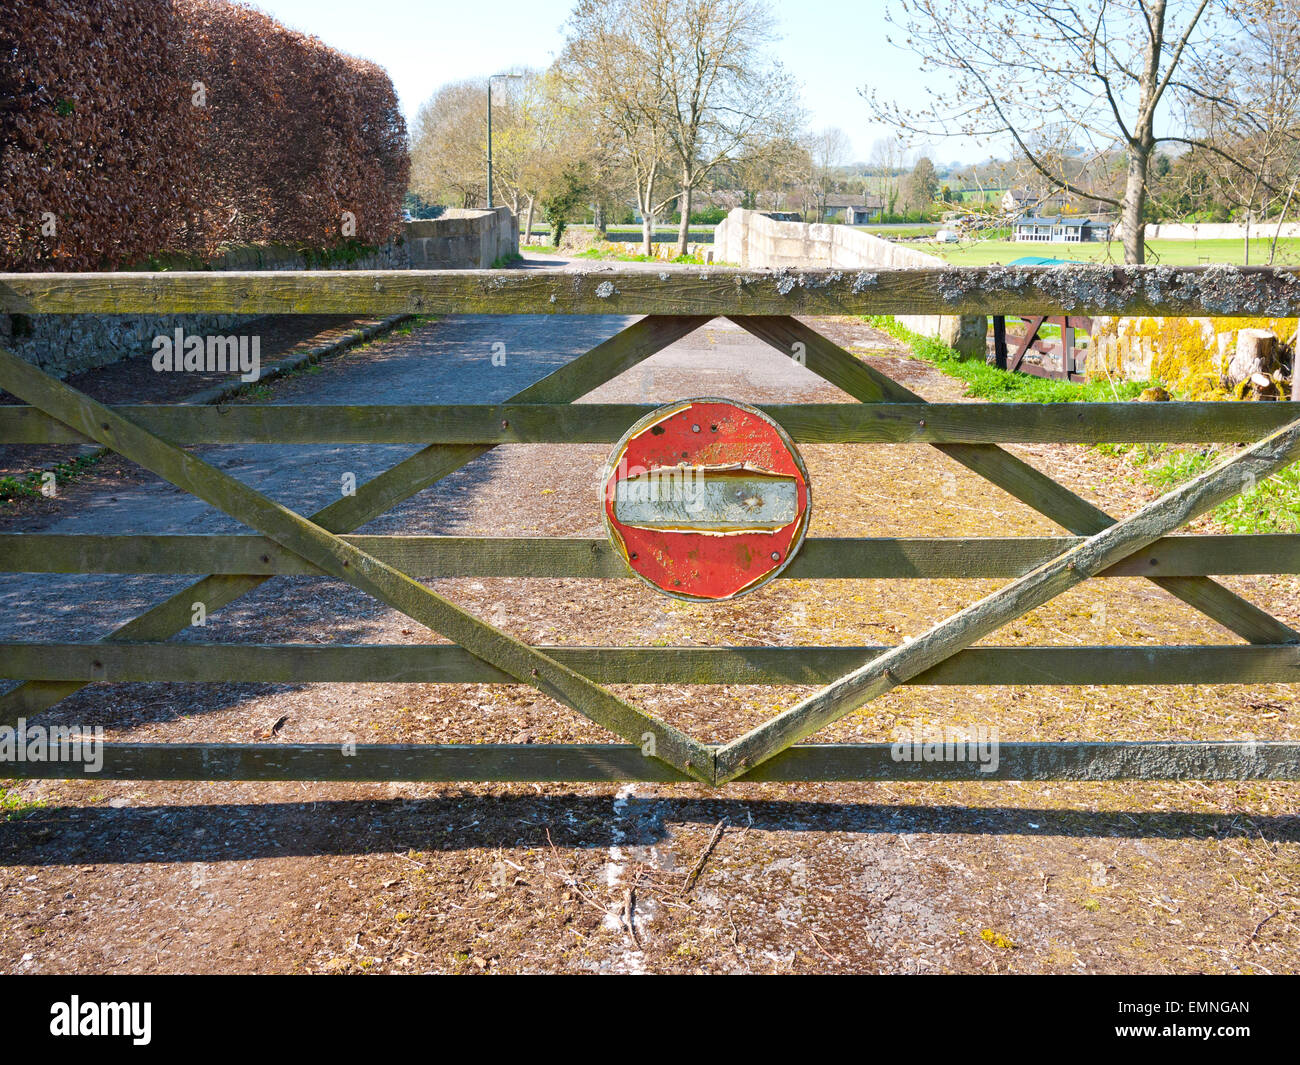 Old no entry sign on gate in the village of Ashford in the water, Derbyshire, England, UK. - Stock Image